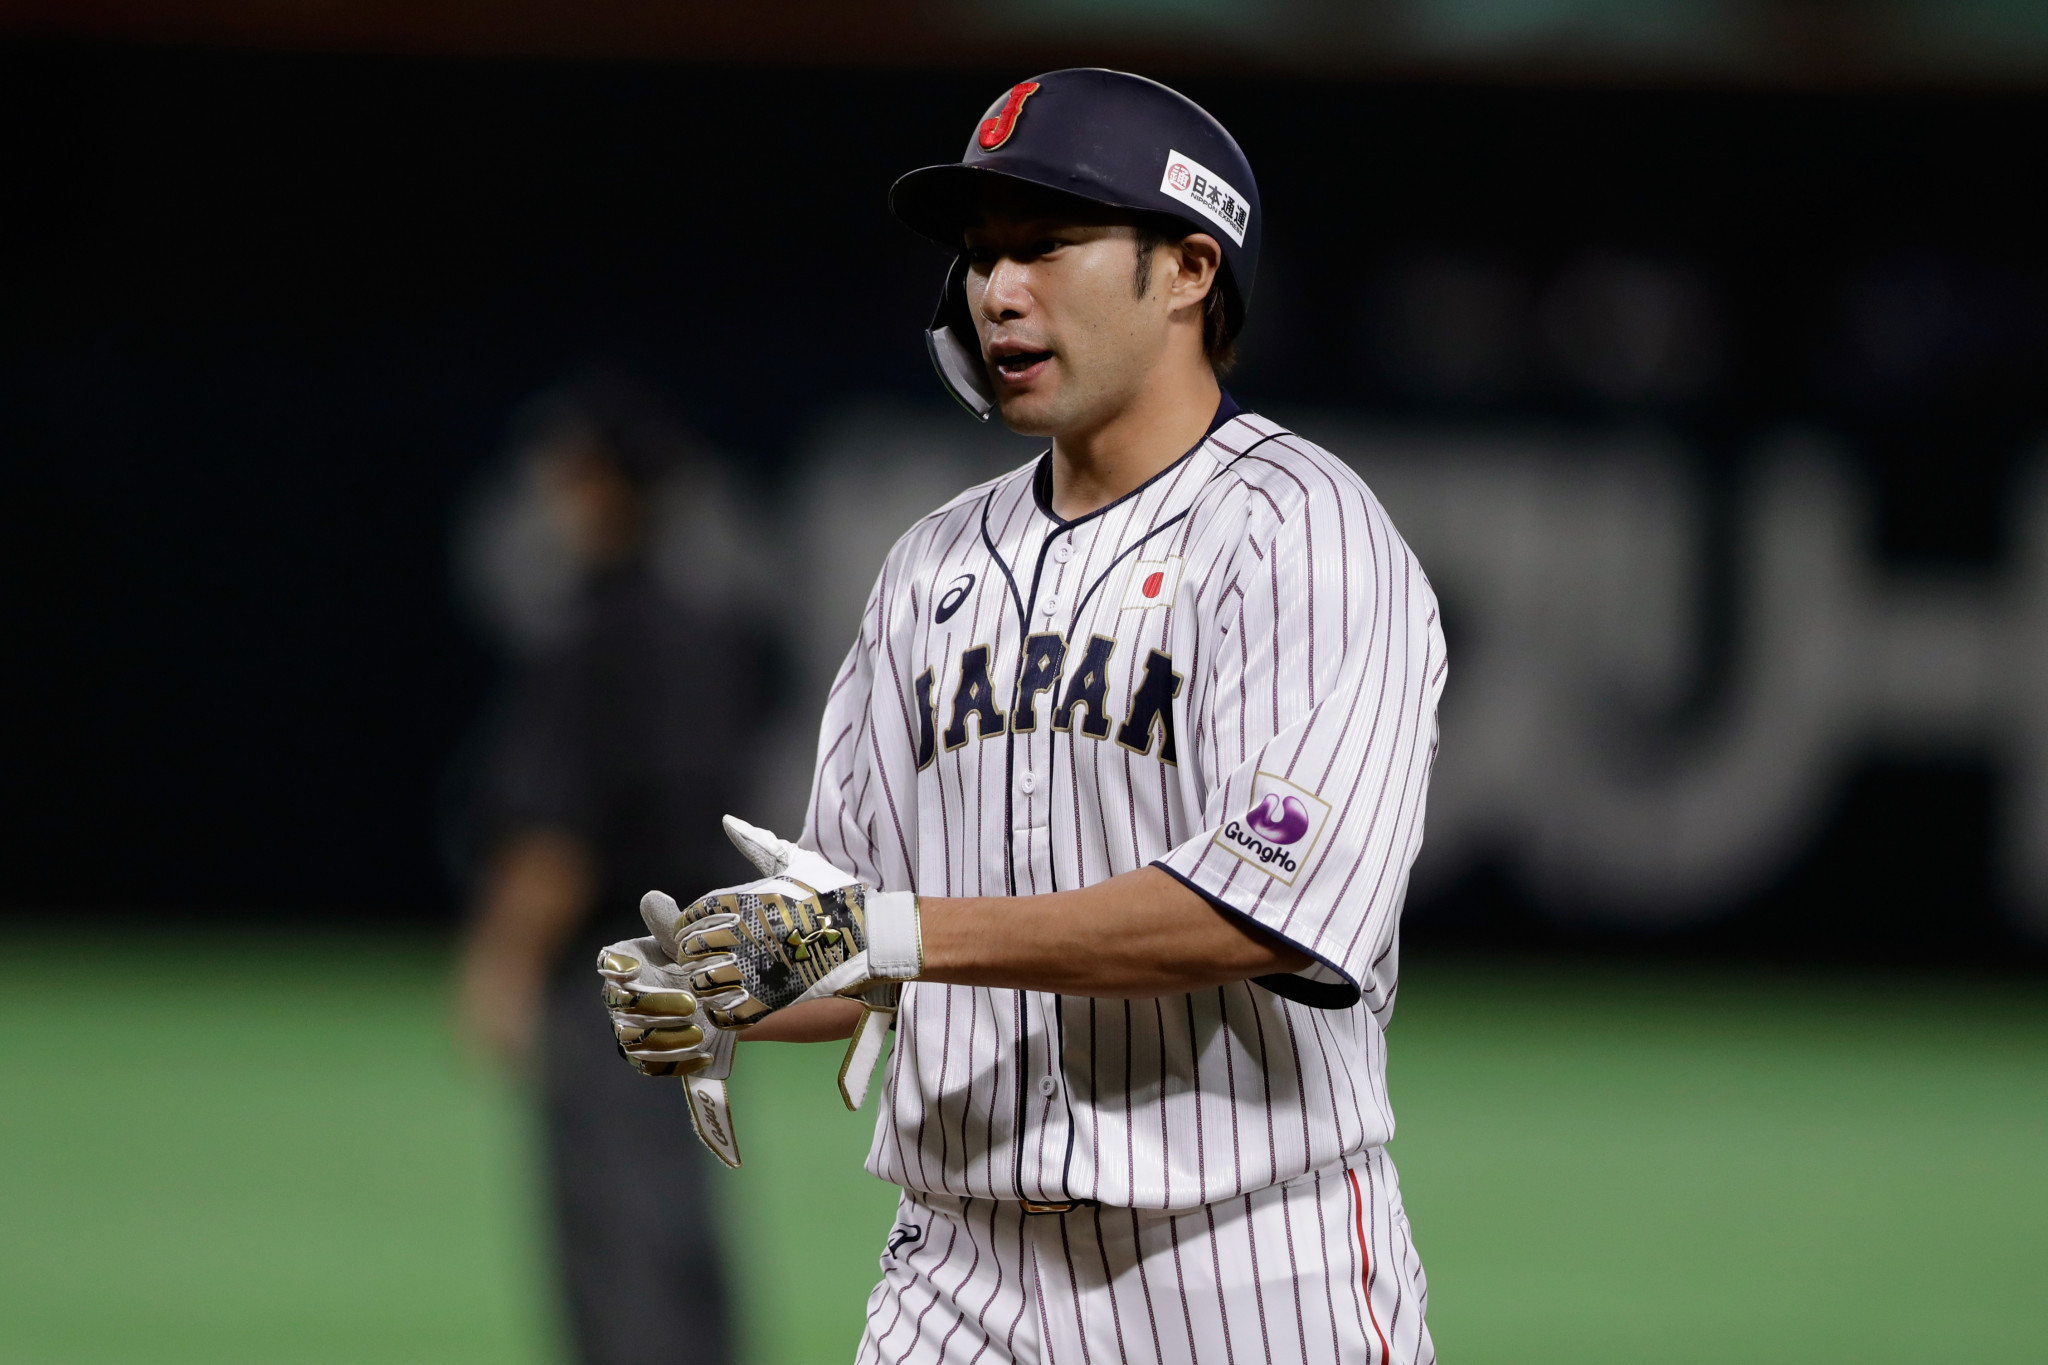 Japan to meet Chinese Taipei in Asian Baseball Championship final